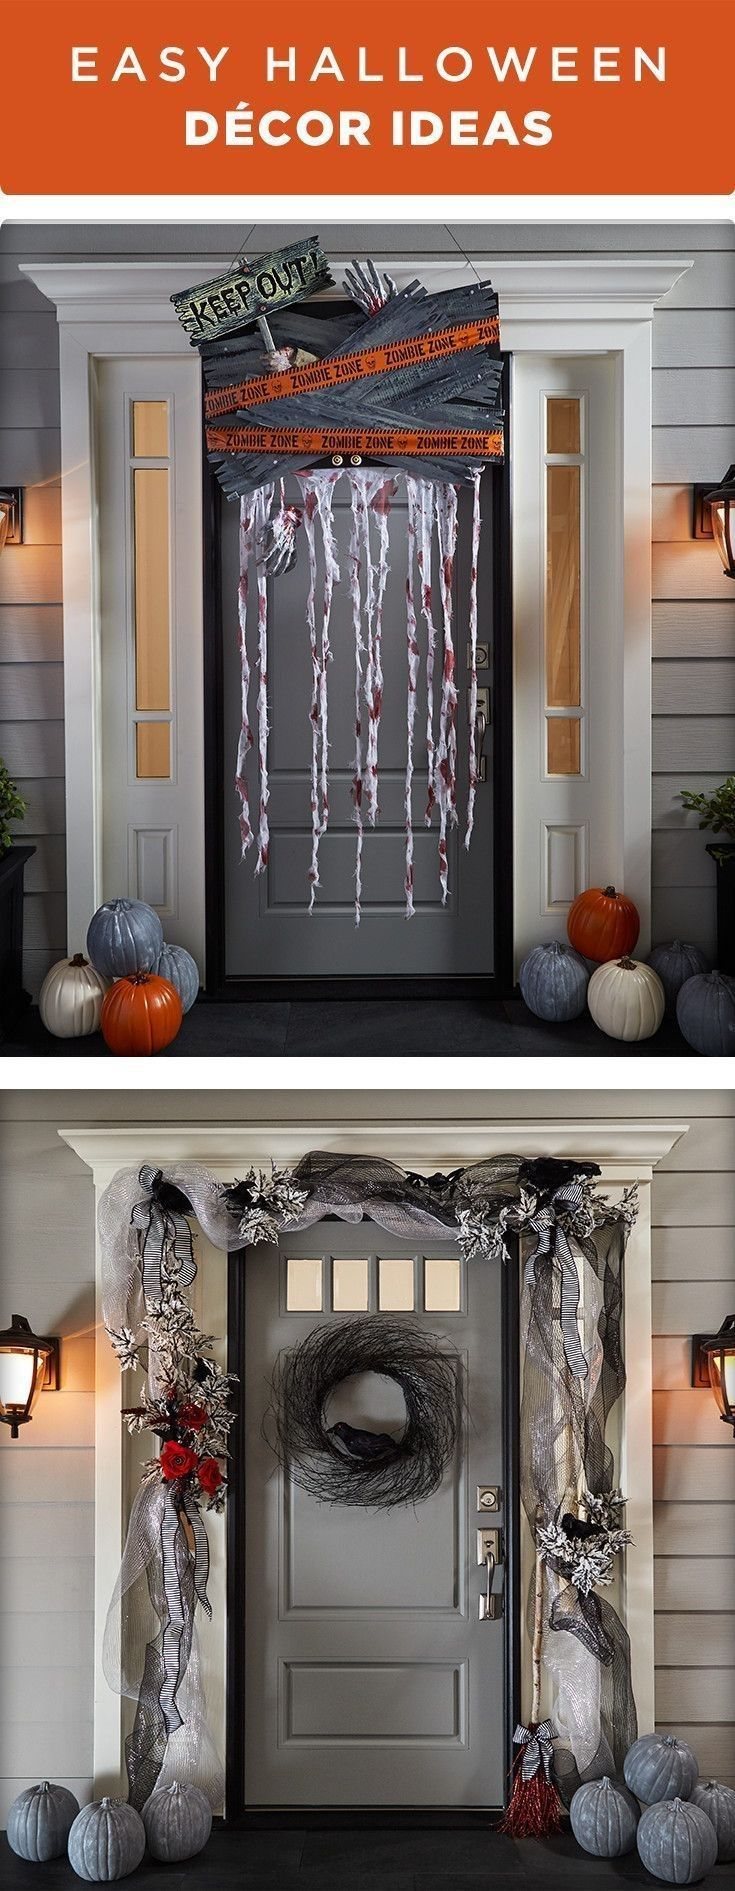 Halloween Decoration Videos, Halloween Decoration Stores